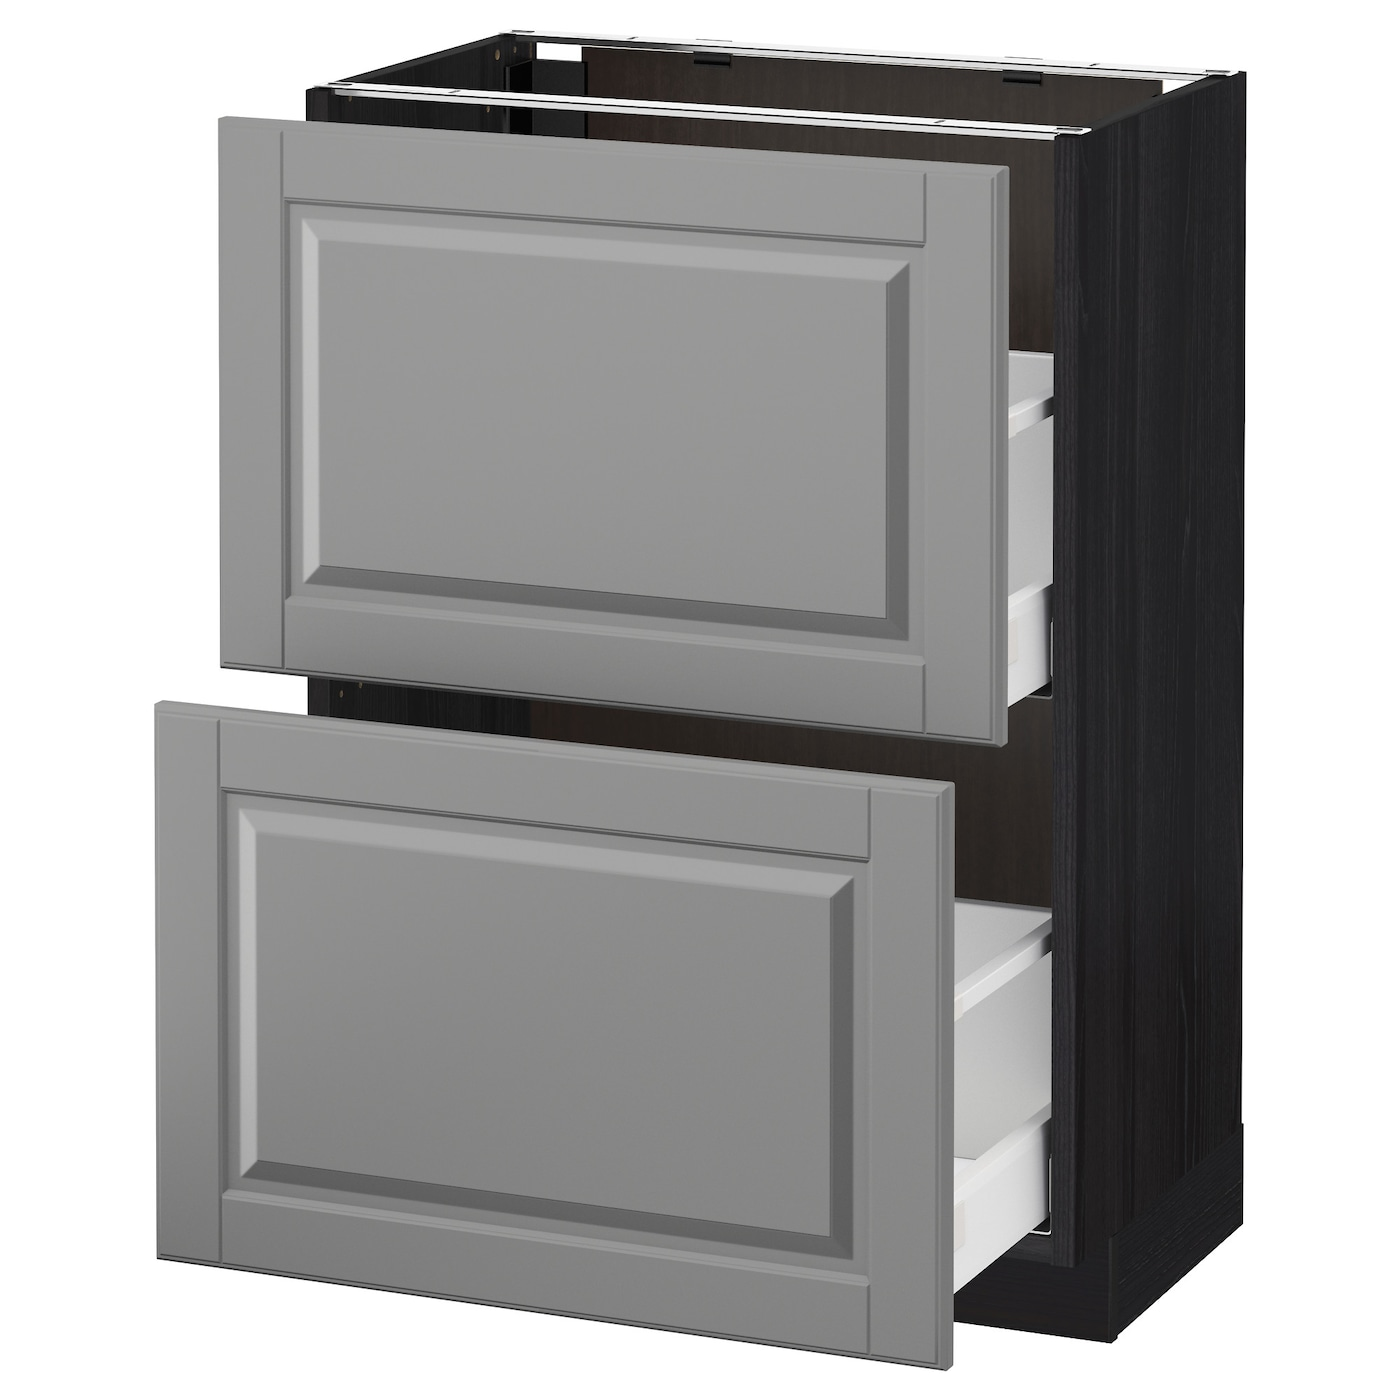 metod maximera base cabinet with 2 drawers black bodbyn grey 60 x 37 cm ikea. Black Bedroom Furniture Sets. Home Design Ideas